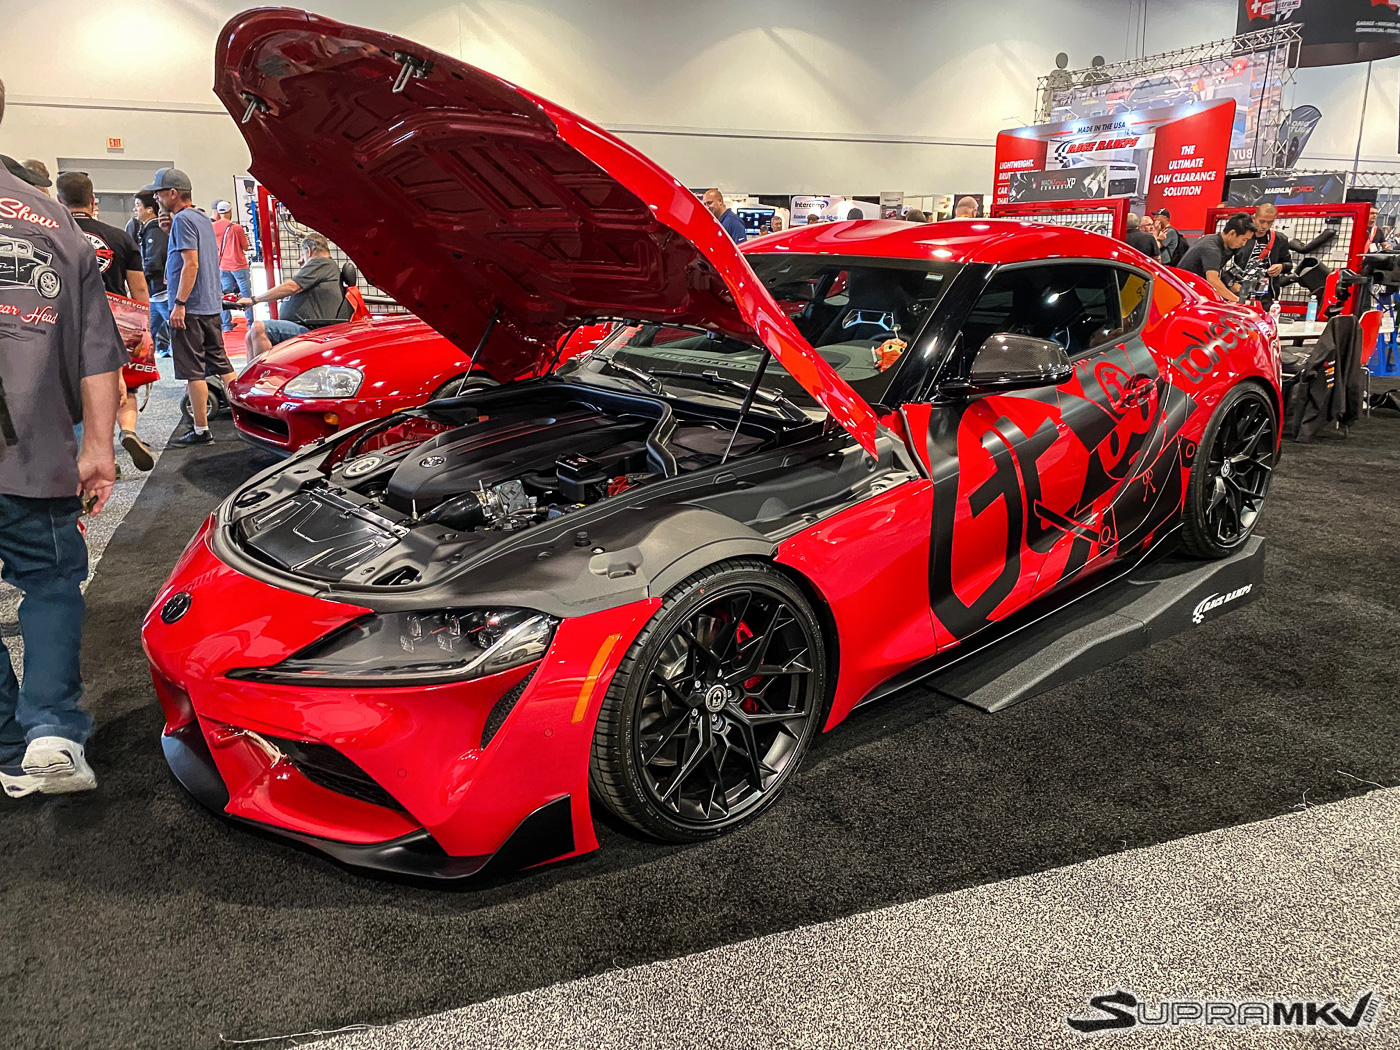 aFe-Power-Toyota-Supra-MKV-SEMA-Build-1.jpg